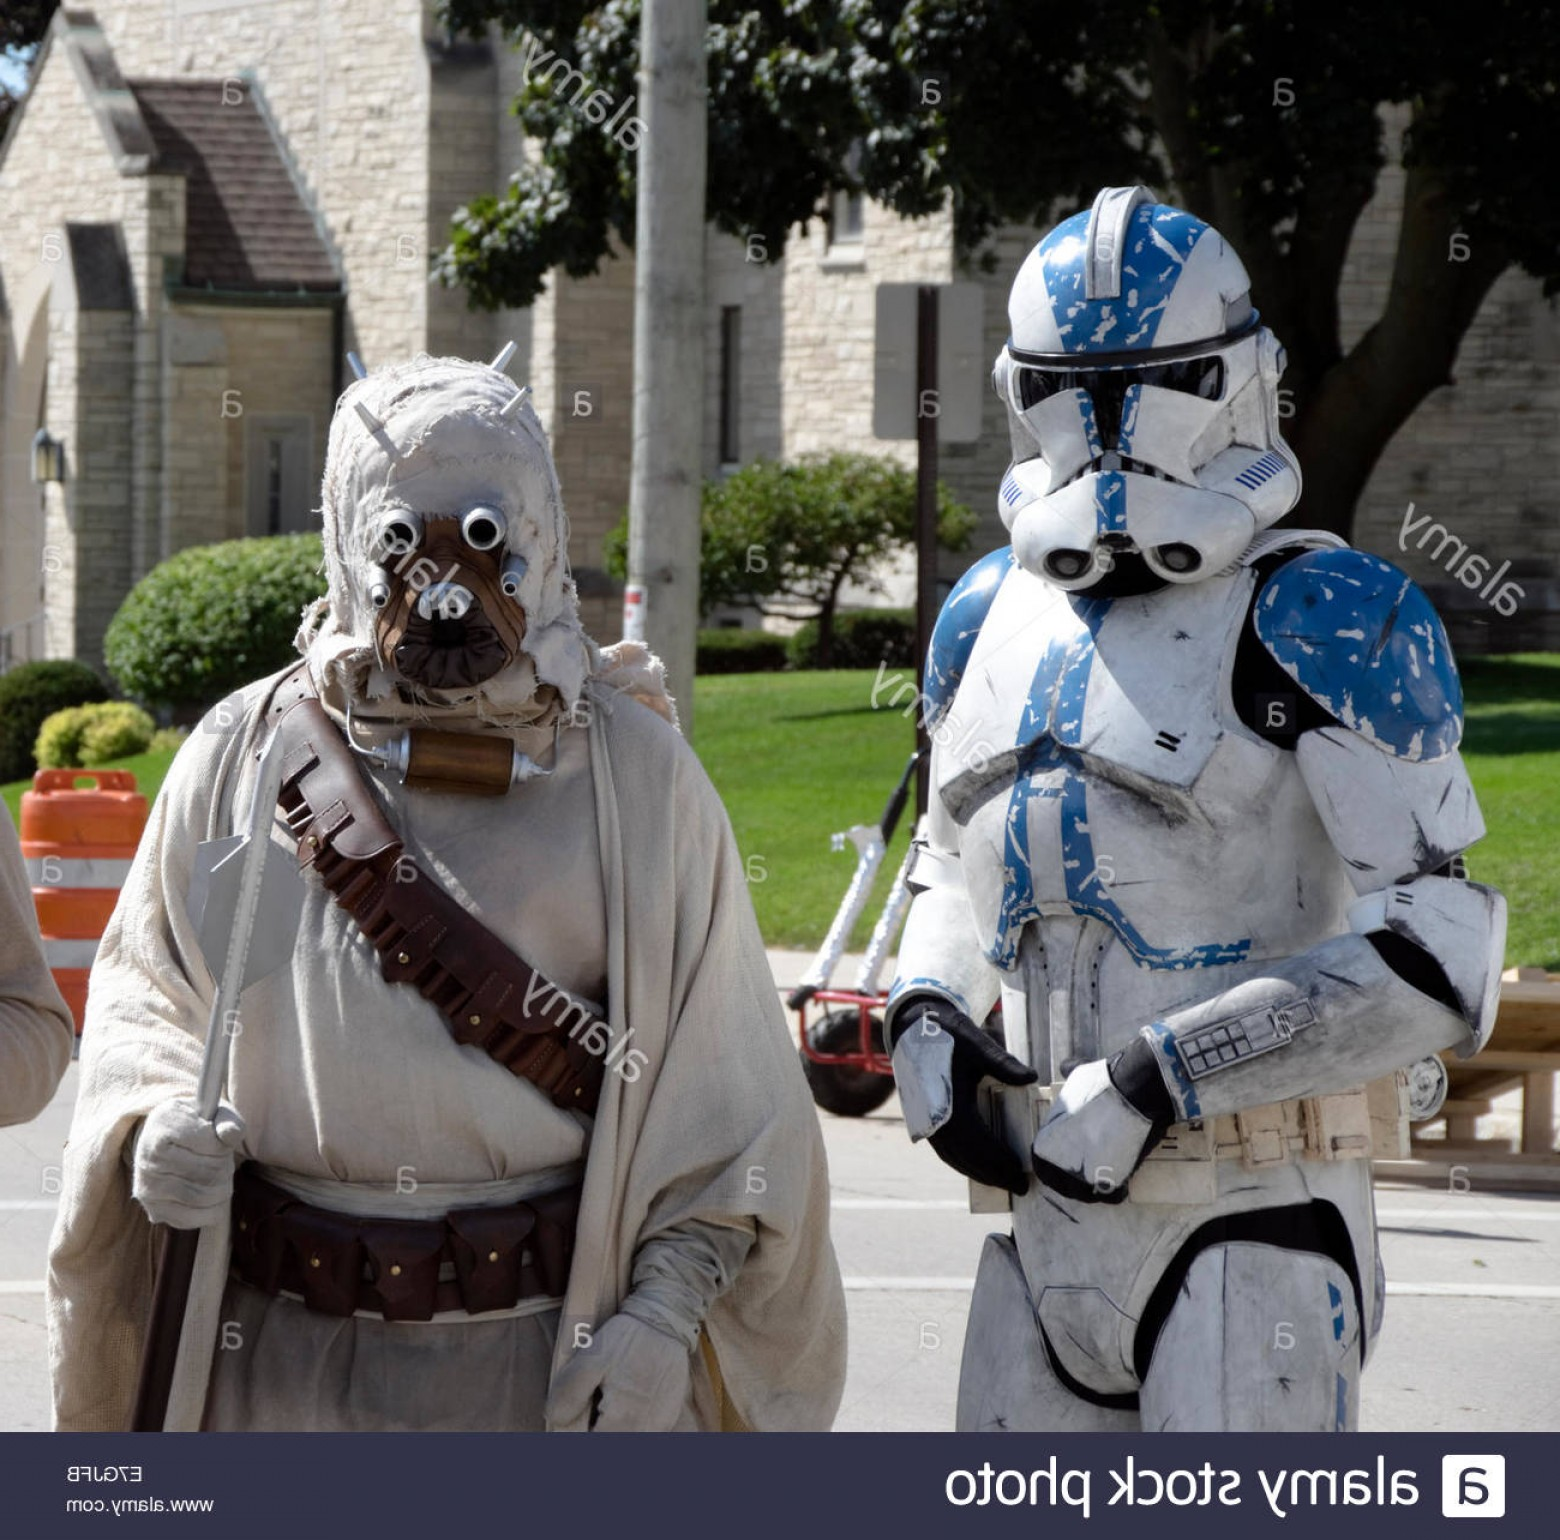 Clone Trooper Vector Art: Stock Photo Star Wars Characters Clone Trooper And Tusken Raider At Sputnikfest